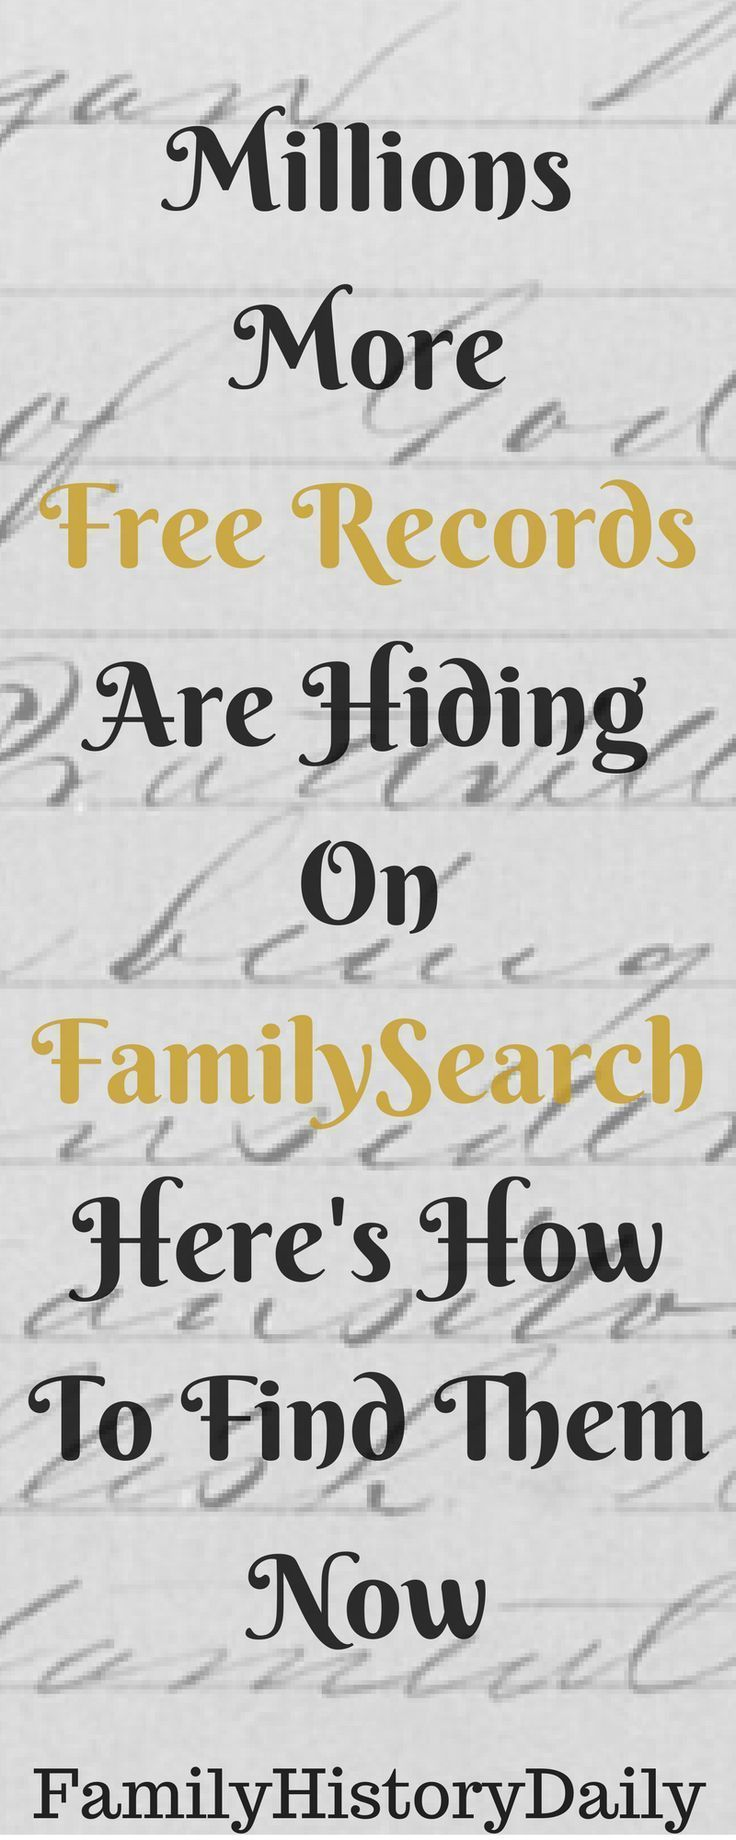 FamilySearch's Browse-Only Collections: The Hidden Records Many Miss #genealogy